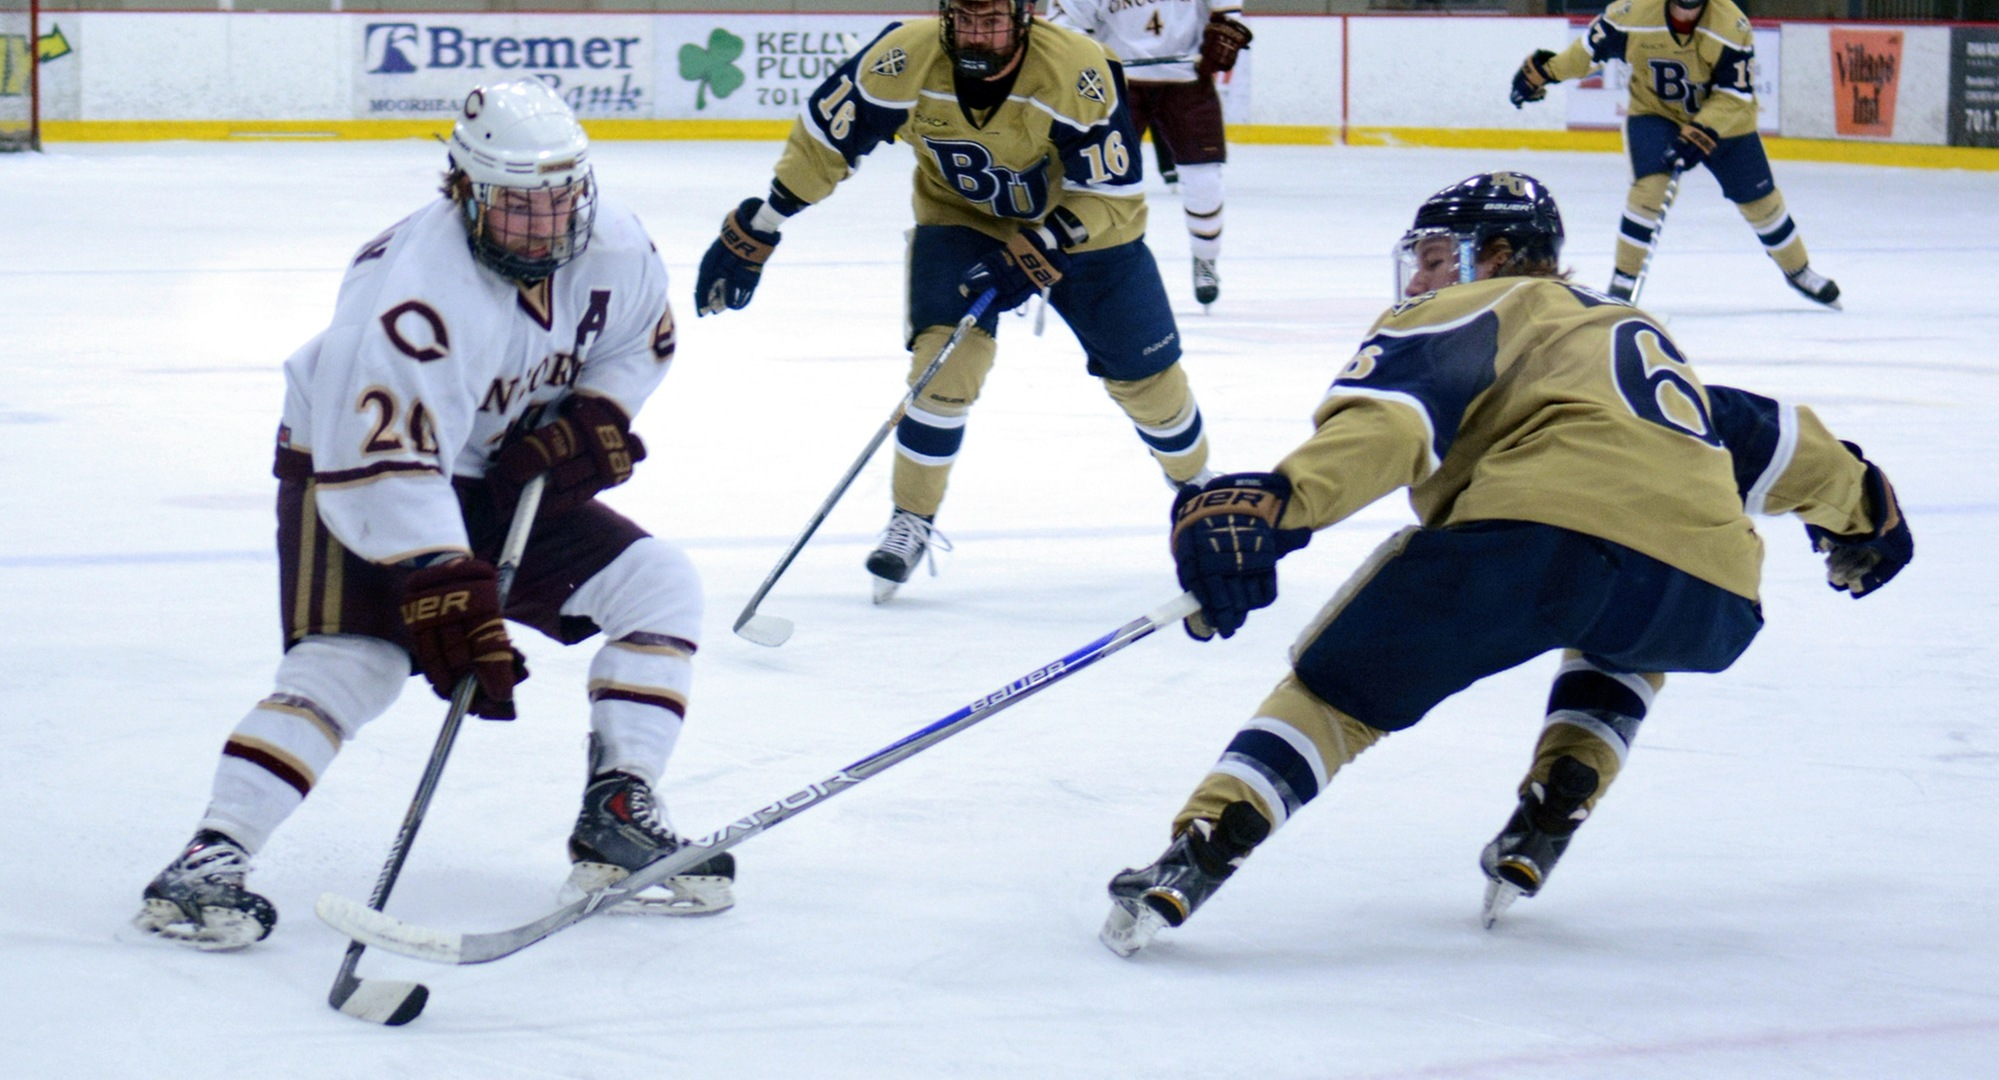 Senior Jeremy Johnson scored the game-winning goal in the Cobbers' playoff-clinching 6-2 victory at Bethel.